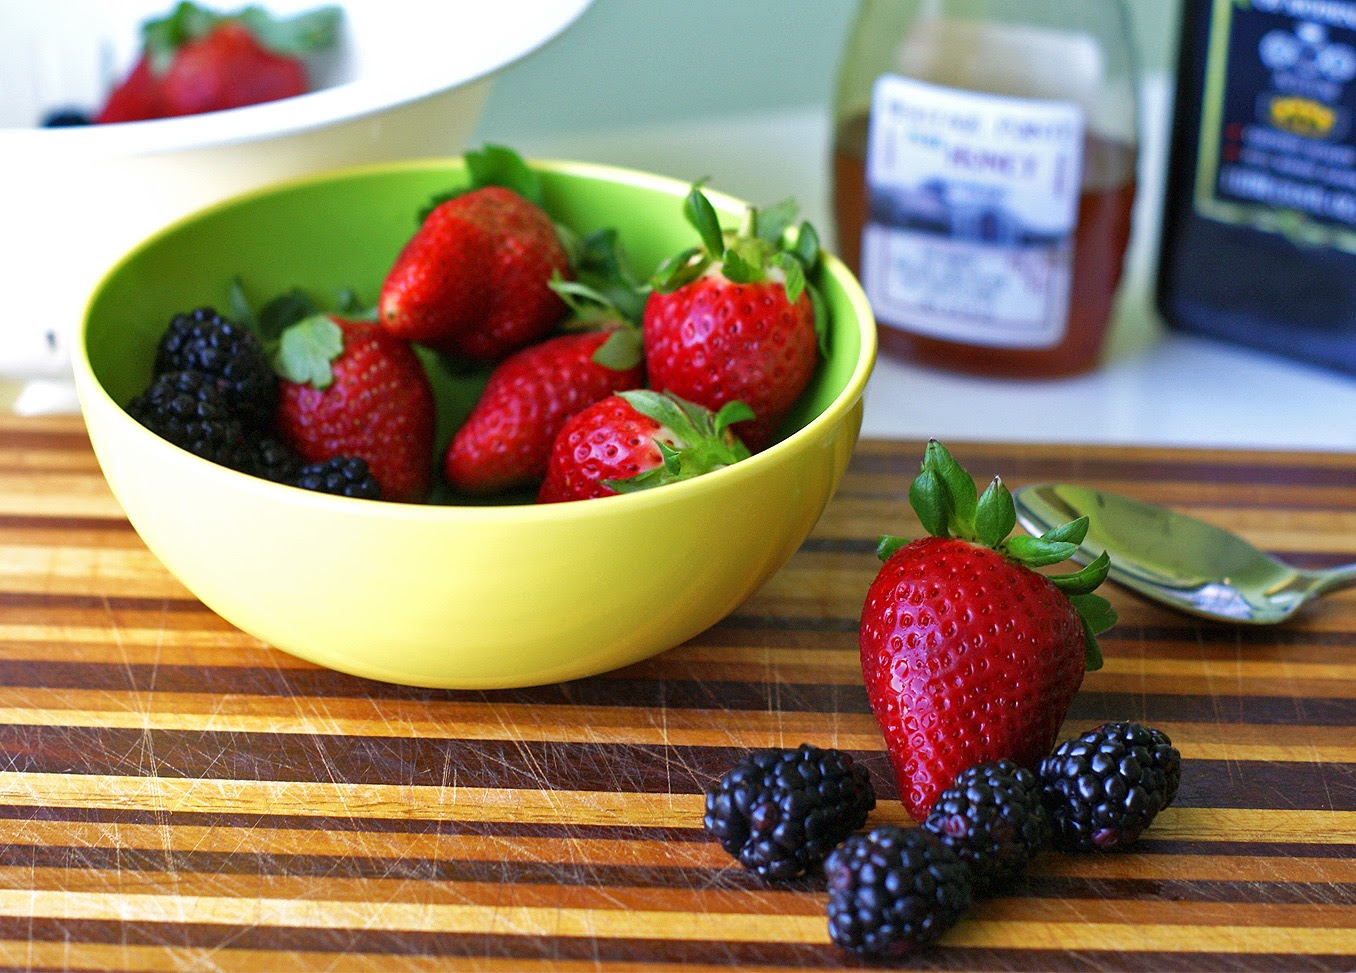 Strawberry-Blackberry Spinach Salad with Honey Balsamic Vinaigrette from Goodlicious